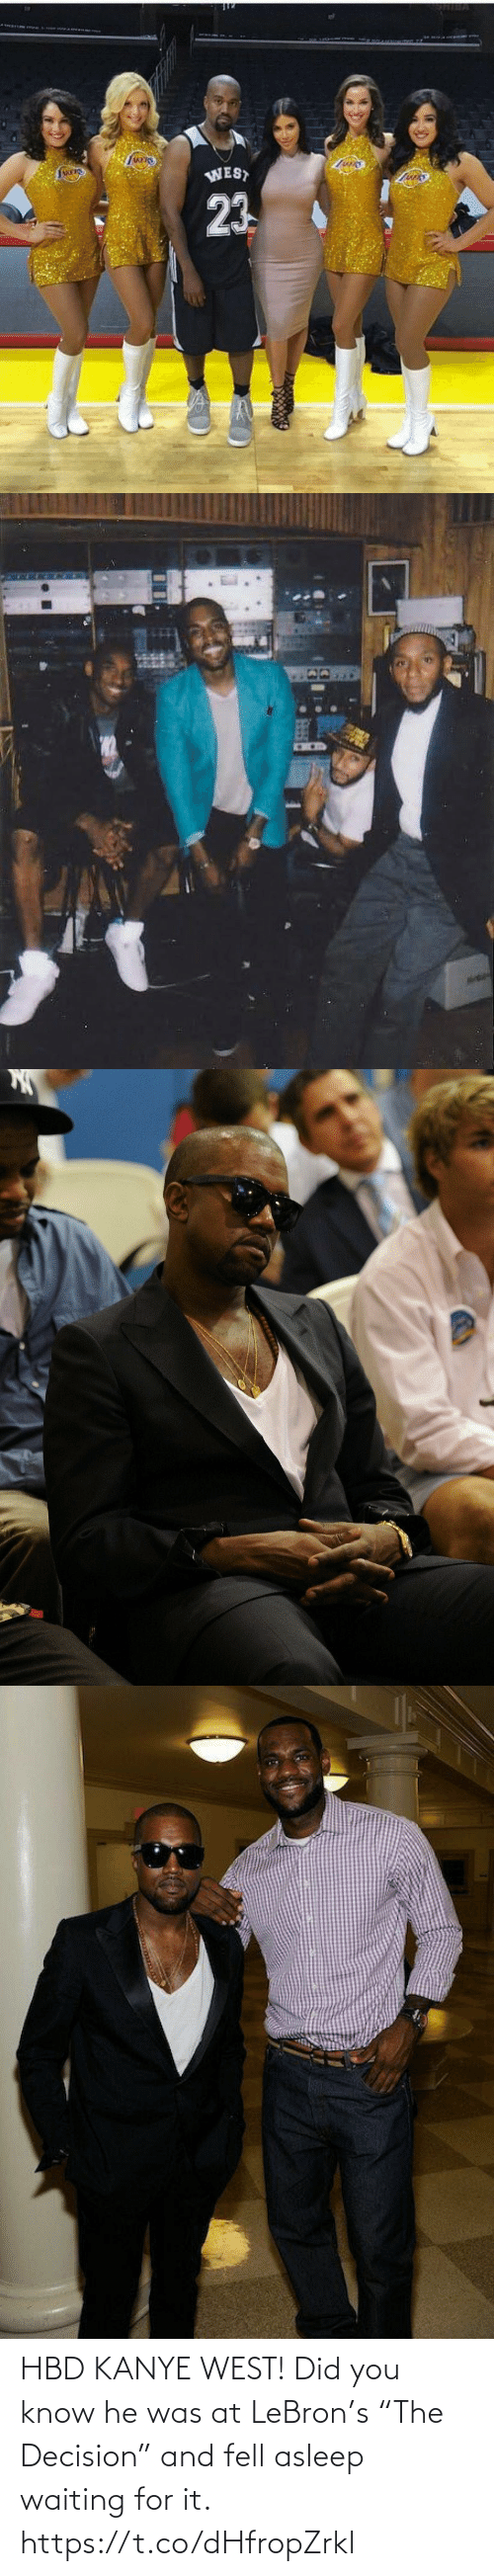 "Waiting For: HBD KANYE WEST! Did you know he was at LeBron's ""The Decision"" and fell asleep waiting for it. https://t.co/dHfropZrkl"